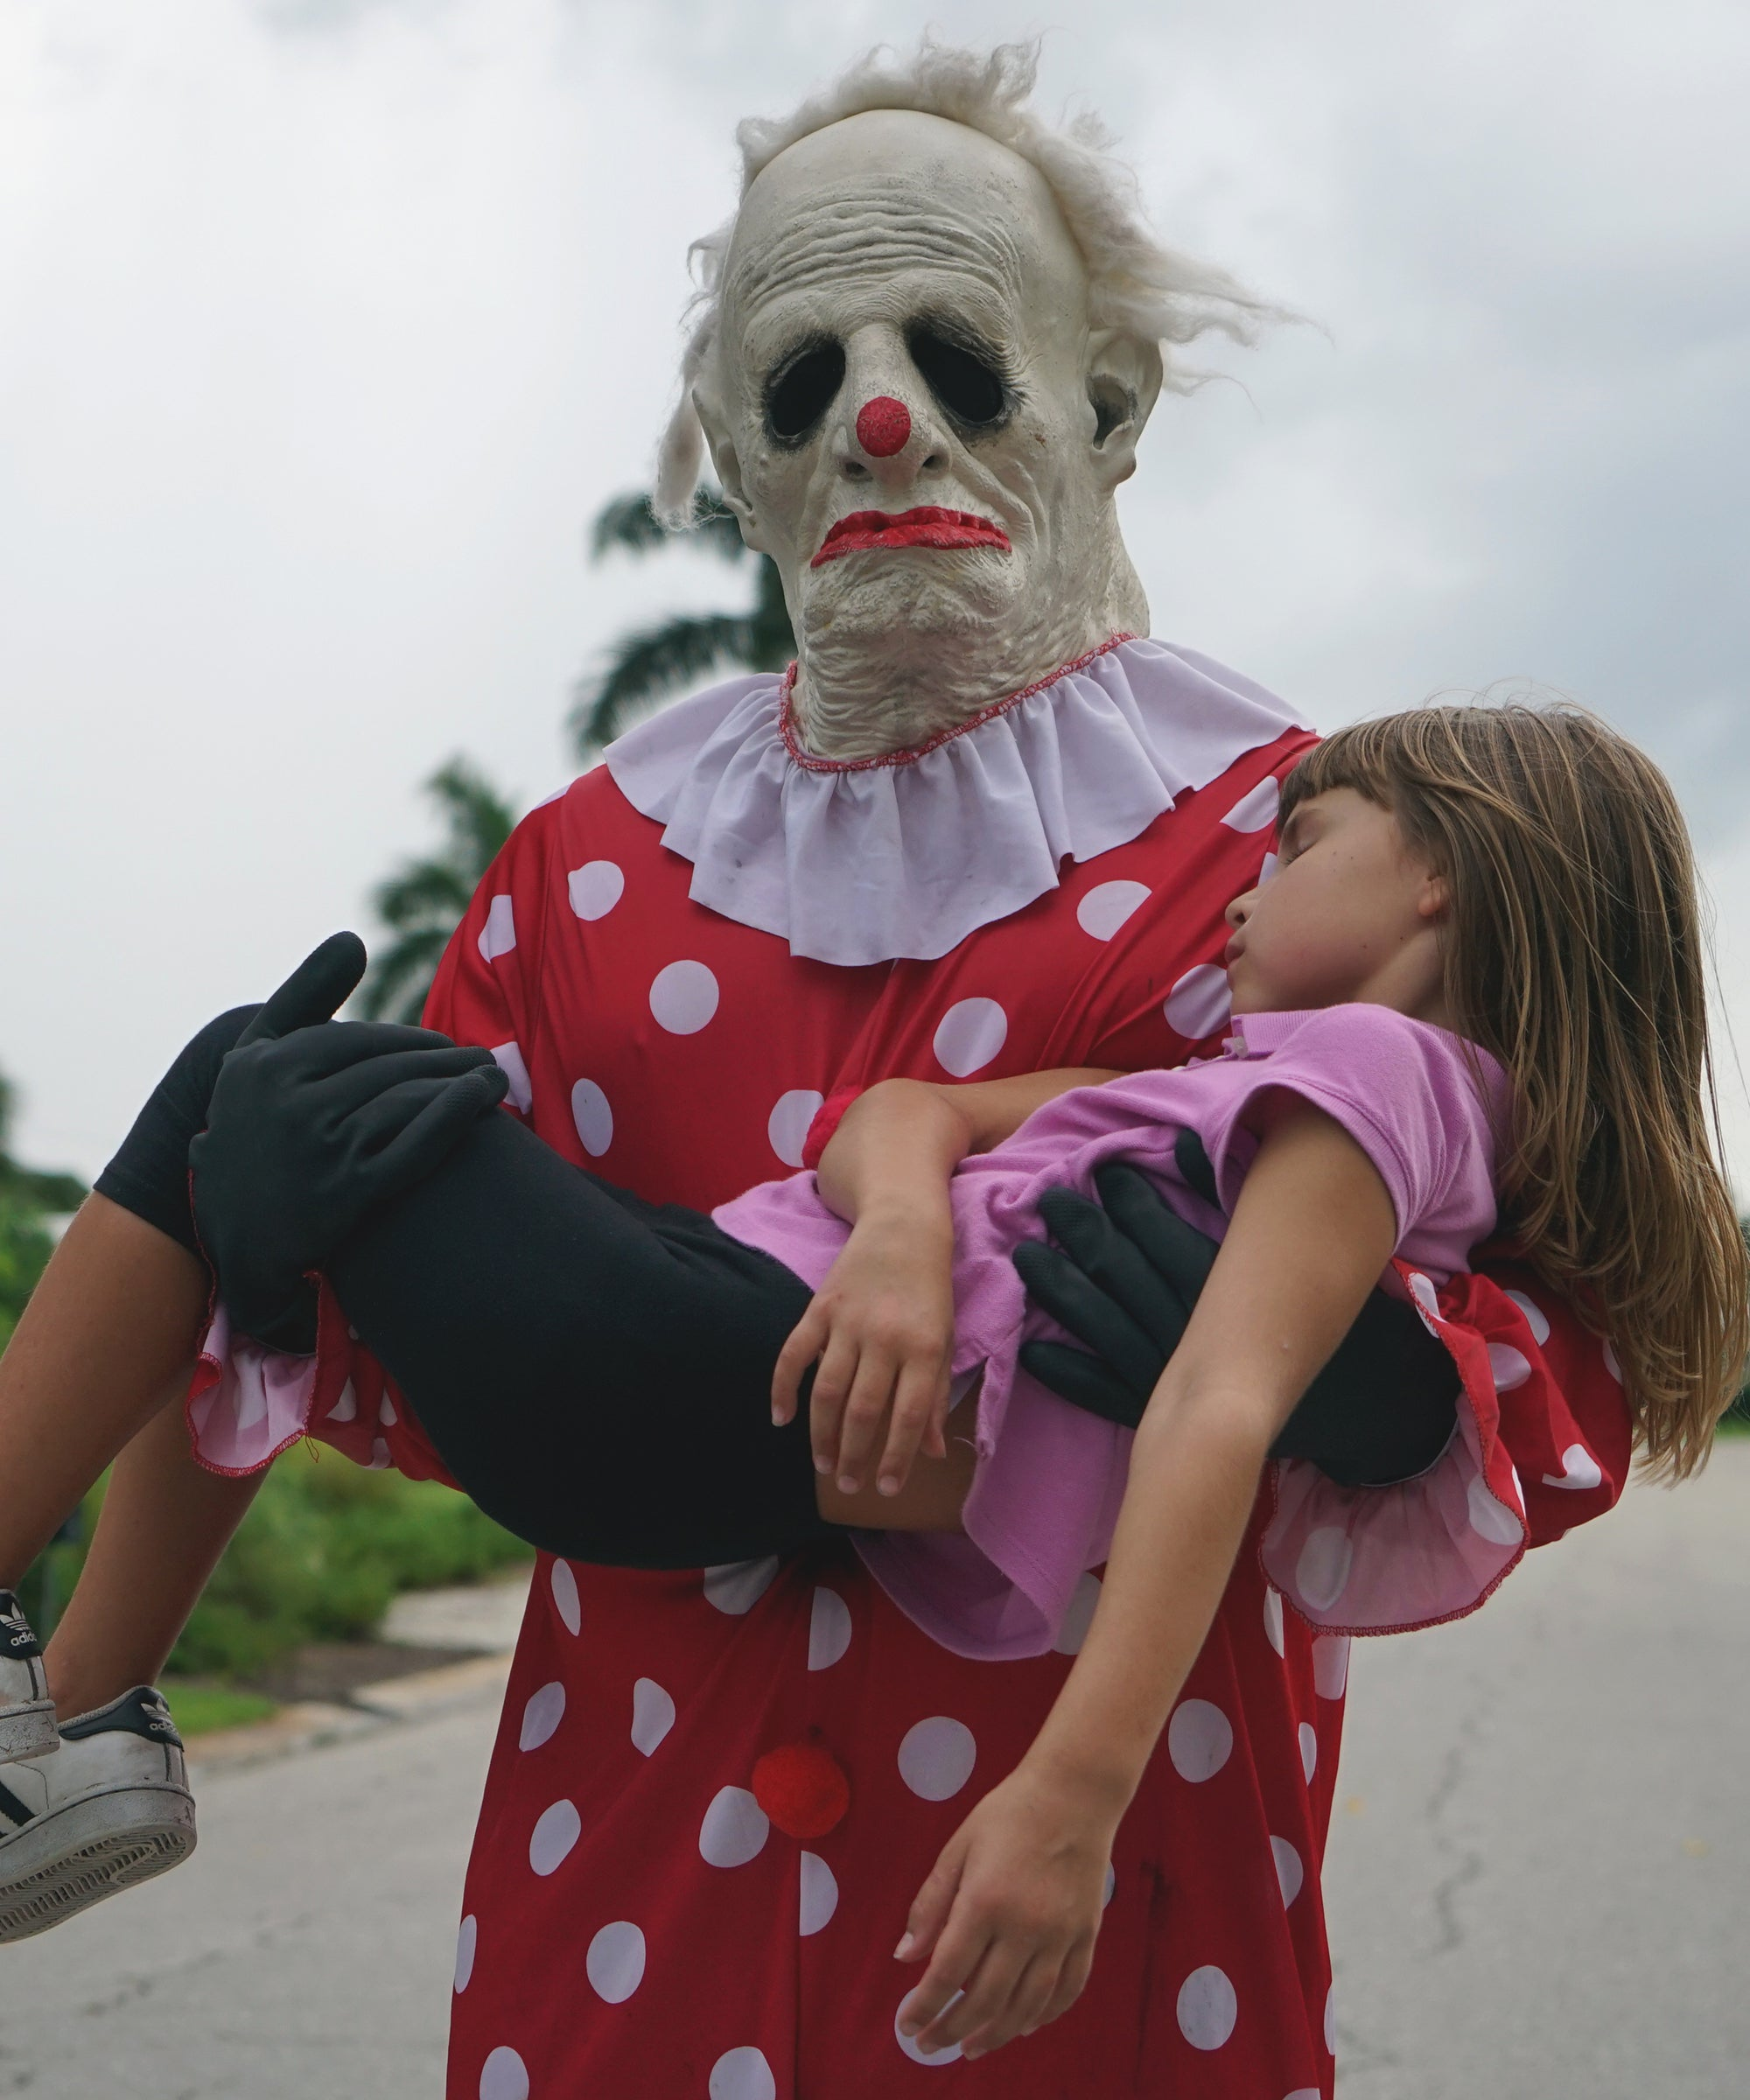 Wrinkles The Clown Movie Is Based On This True Story